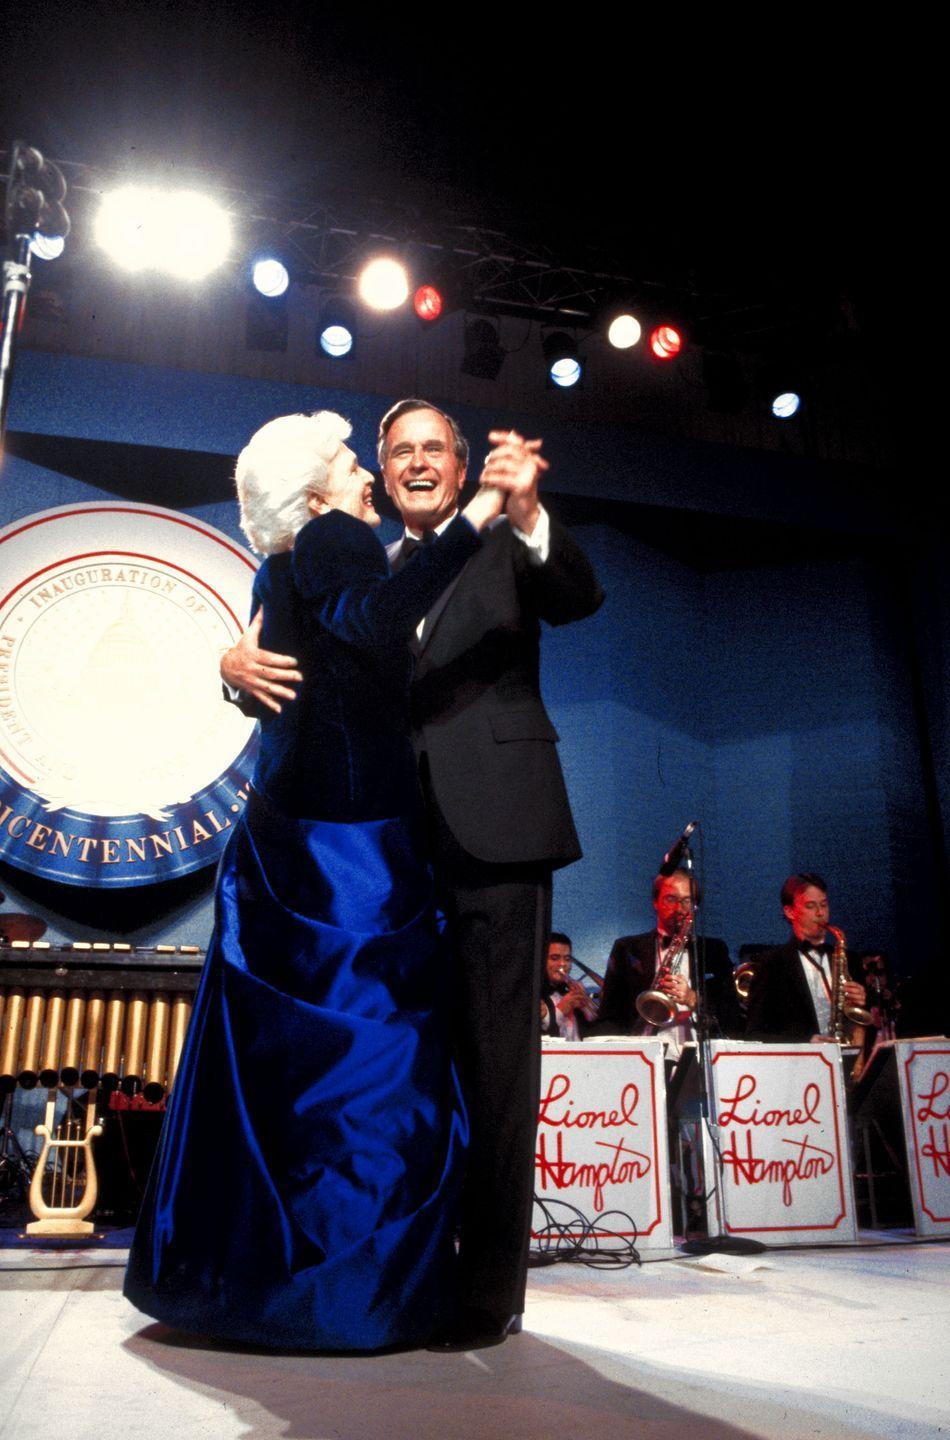 <p>President Bush shares his first dance with his wife, Barbara Bush, at his inaugural ball in 1989. Bush defeated Democratic candidate Michael Dukakis in the election and went on to serve one term as President. </p>